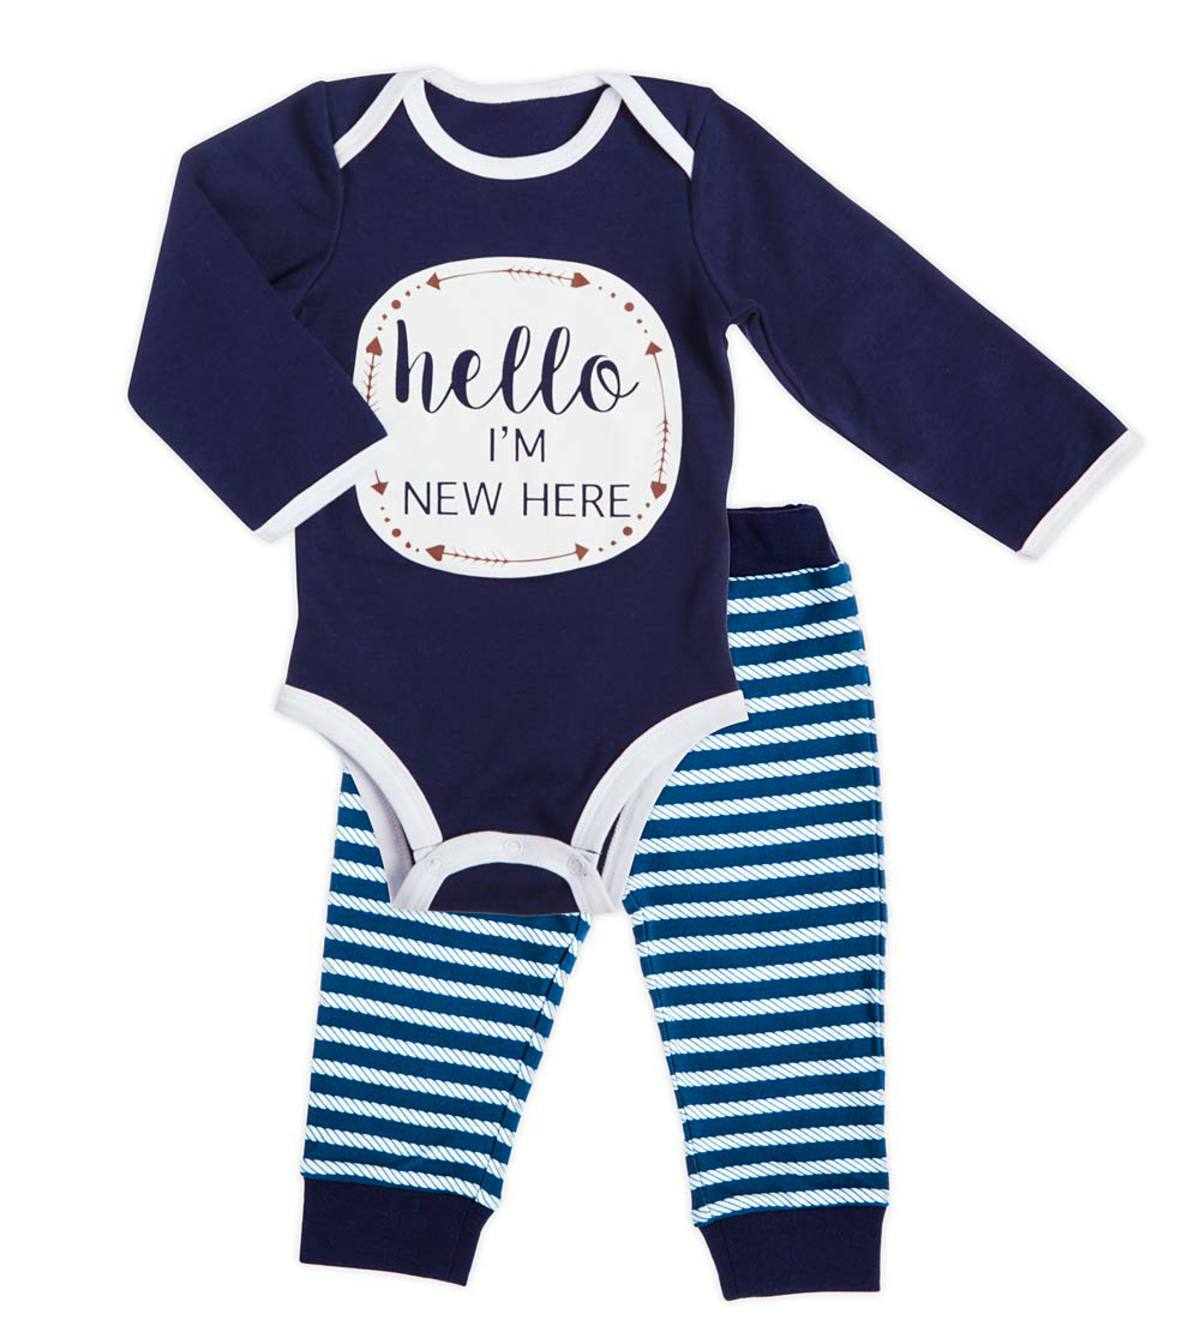 Hello, I'm New Here Apparel Set - Navy - 9/12M